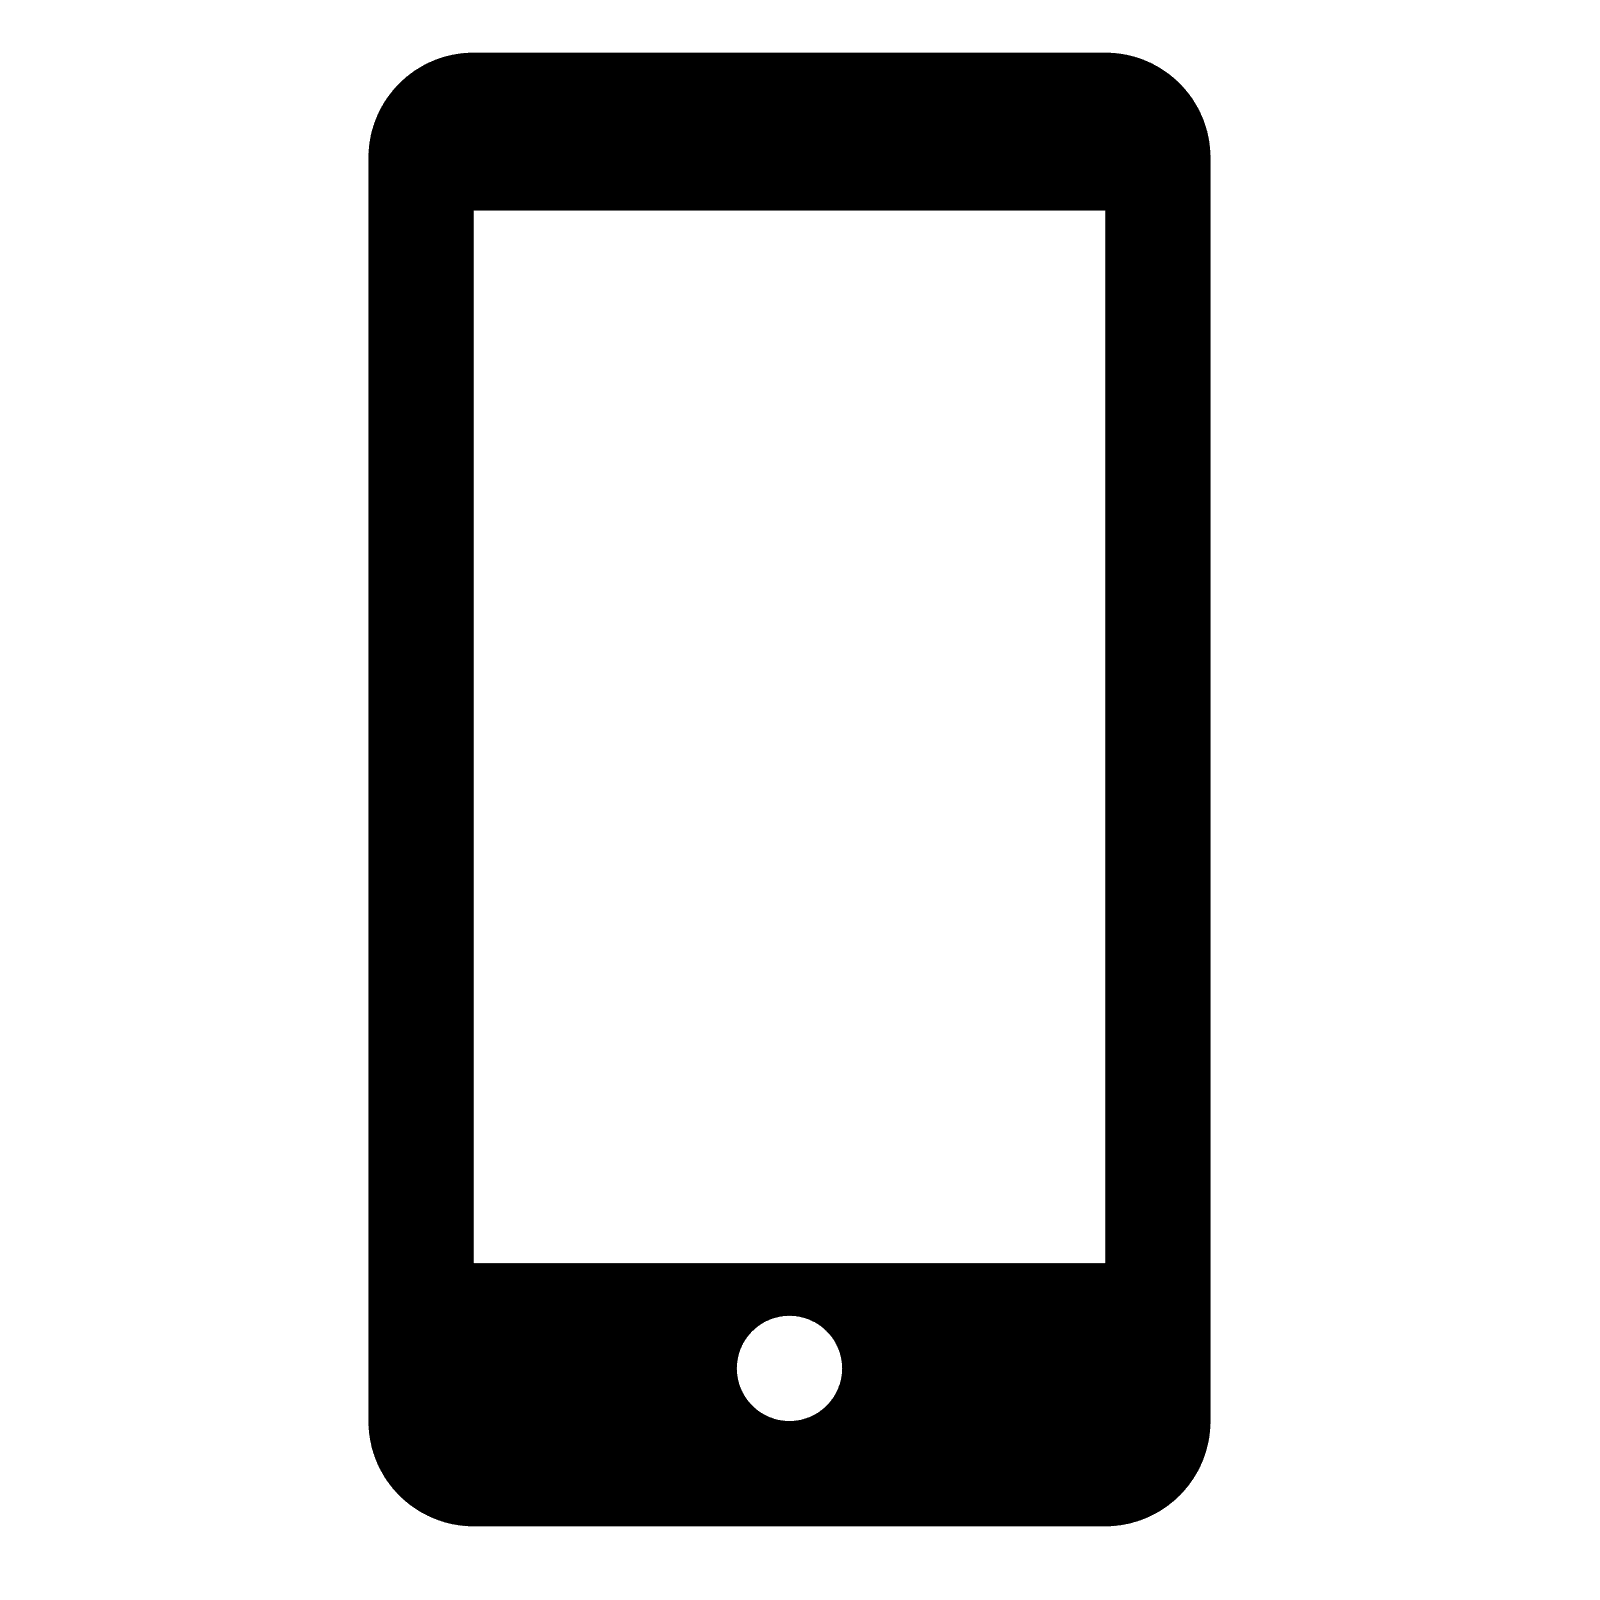 IPhone Icon - Iphone PNG Png